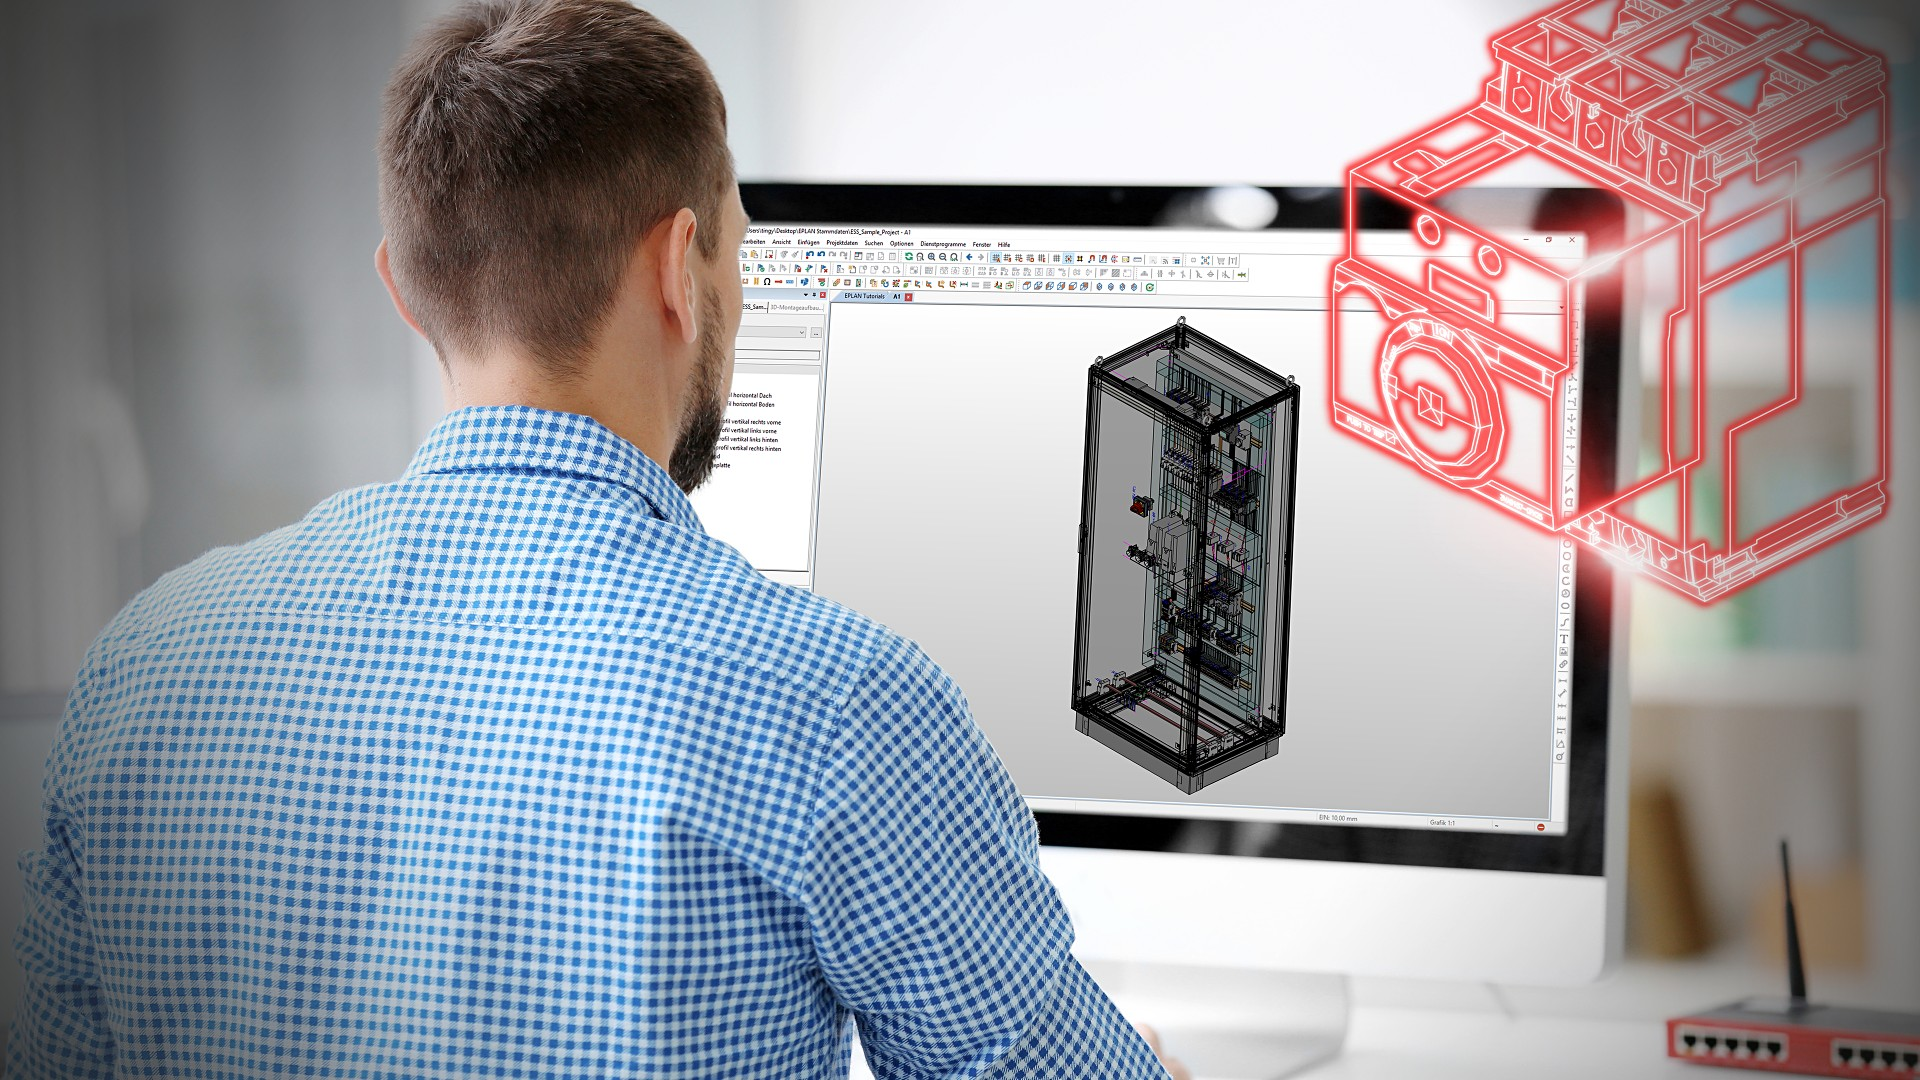 EPLAN 3D Digital Twin